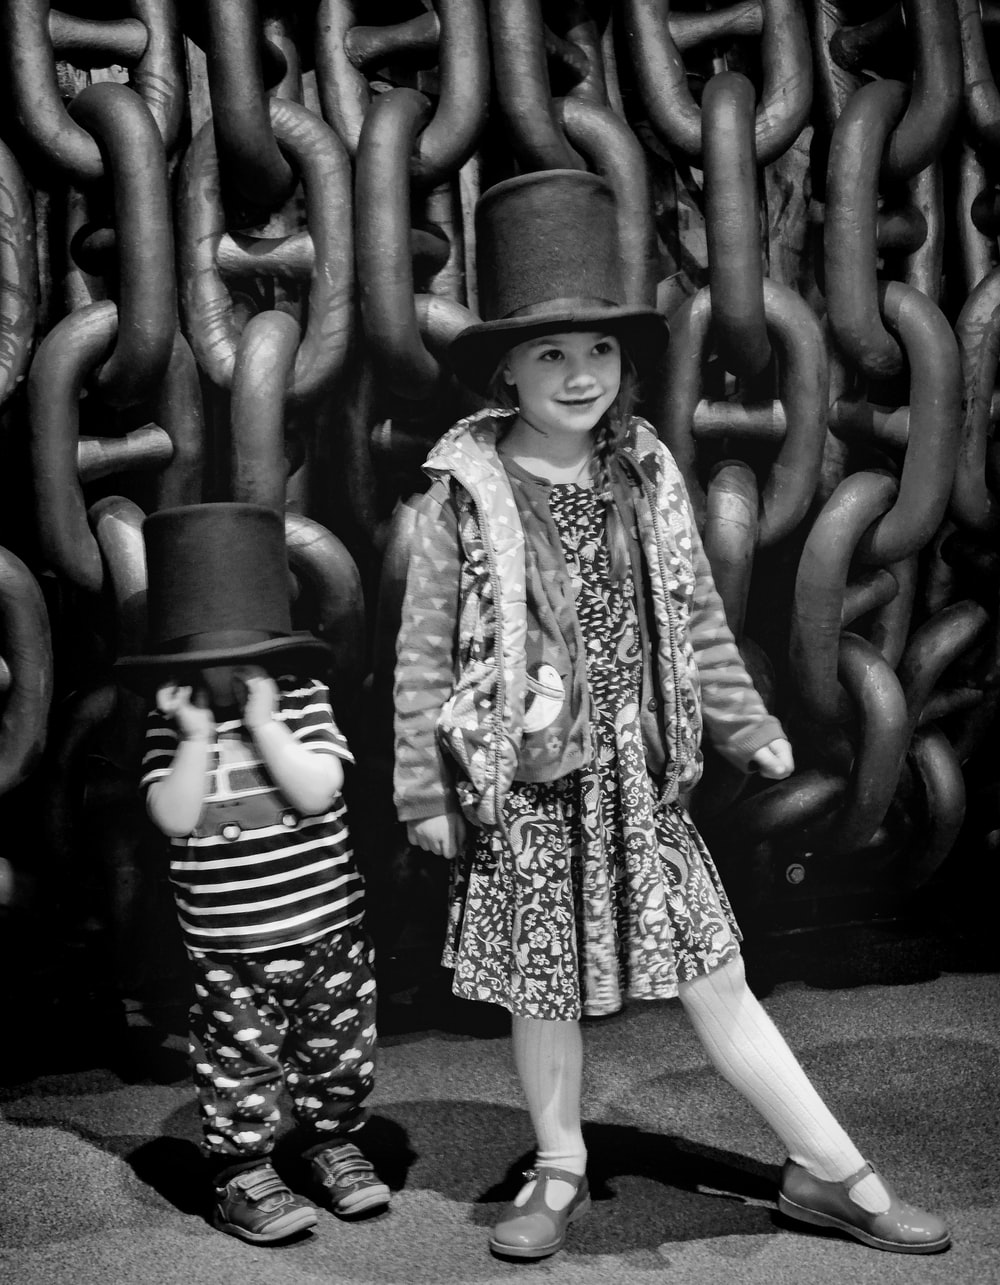 grayscale photo of girl in long sleeve dress and hat standing near metal chain link fence